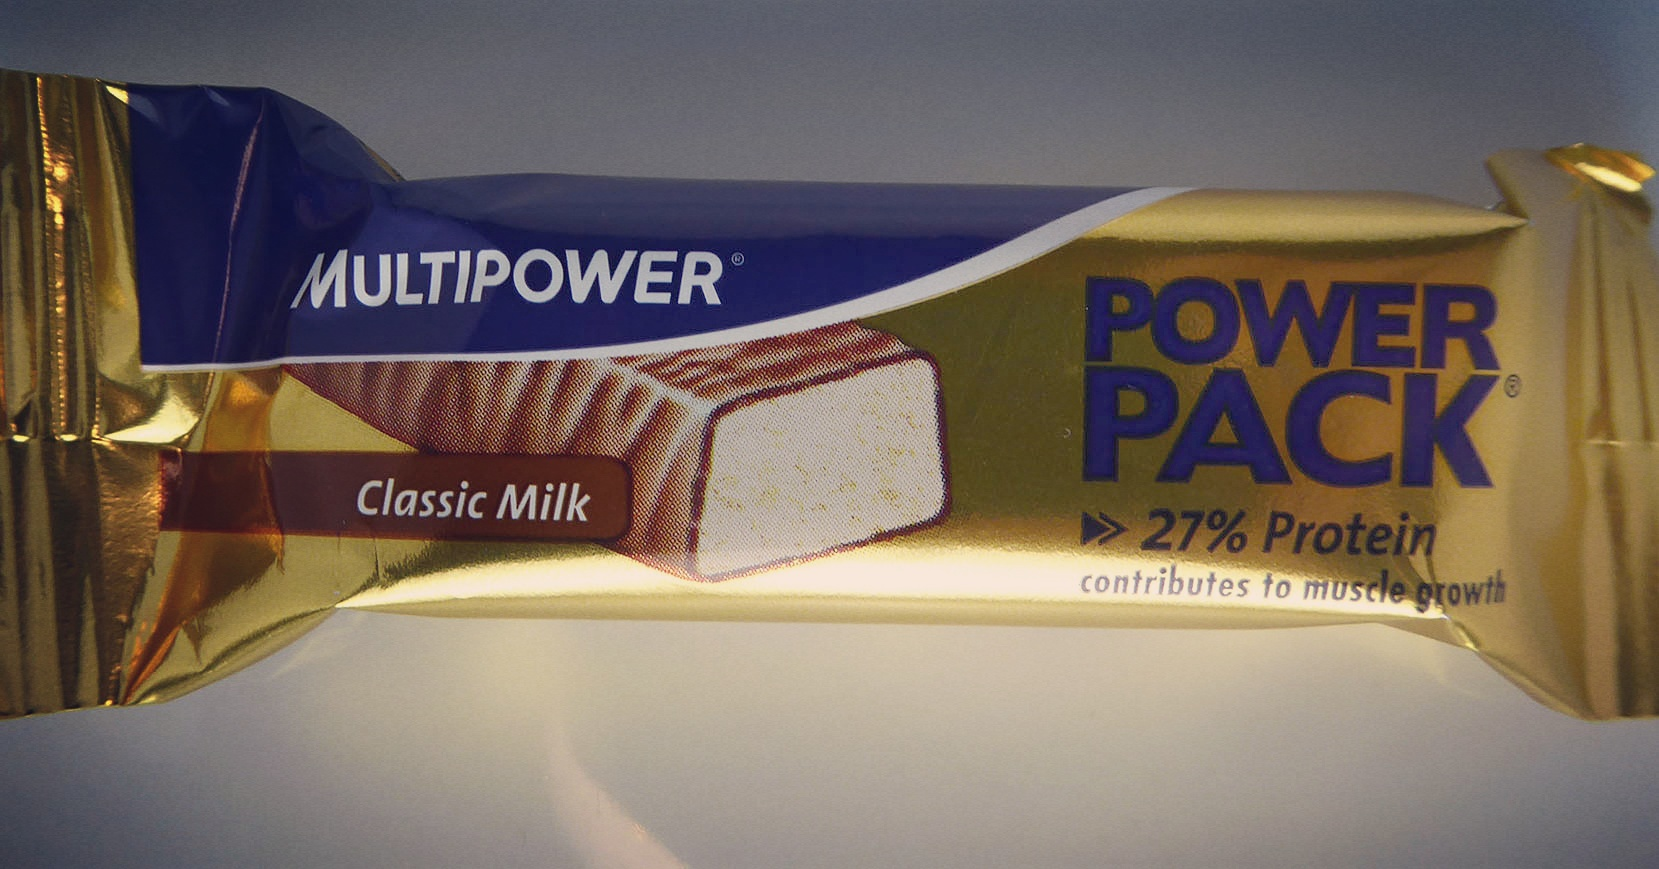 Multipower Classic Milk Power Pack Protein Bar